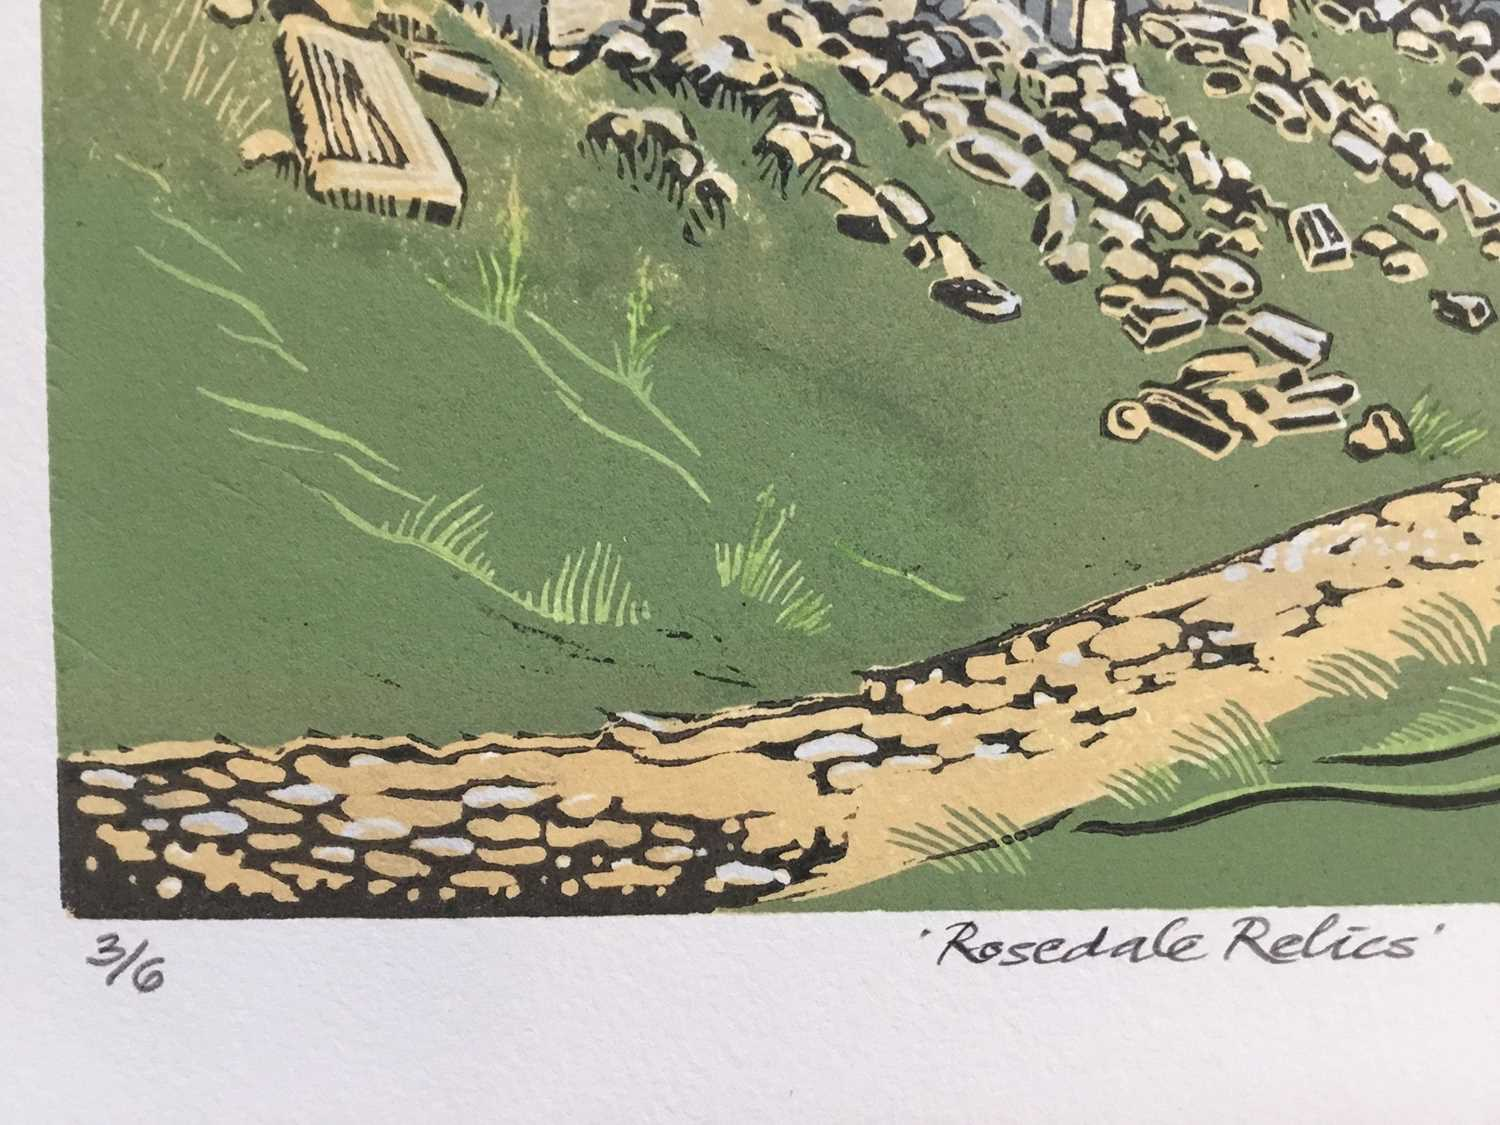 Penny Berry Paterson (1941-2021) colour linocut print, Rosedale Relics, signed and numbered 3/6, 24 - Image 3 of 3